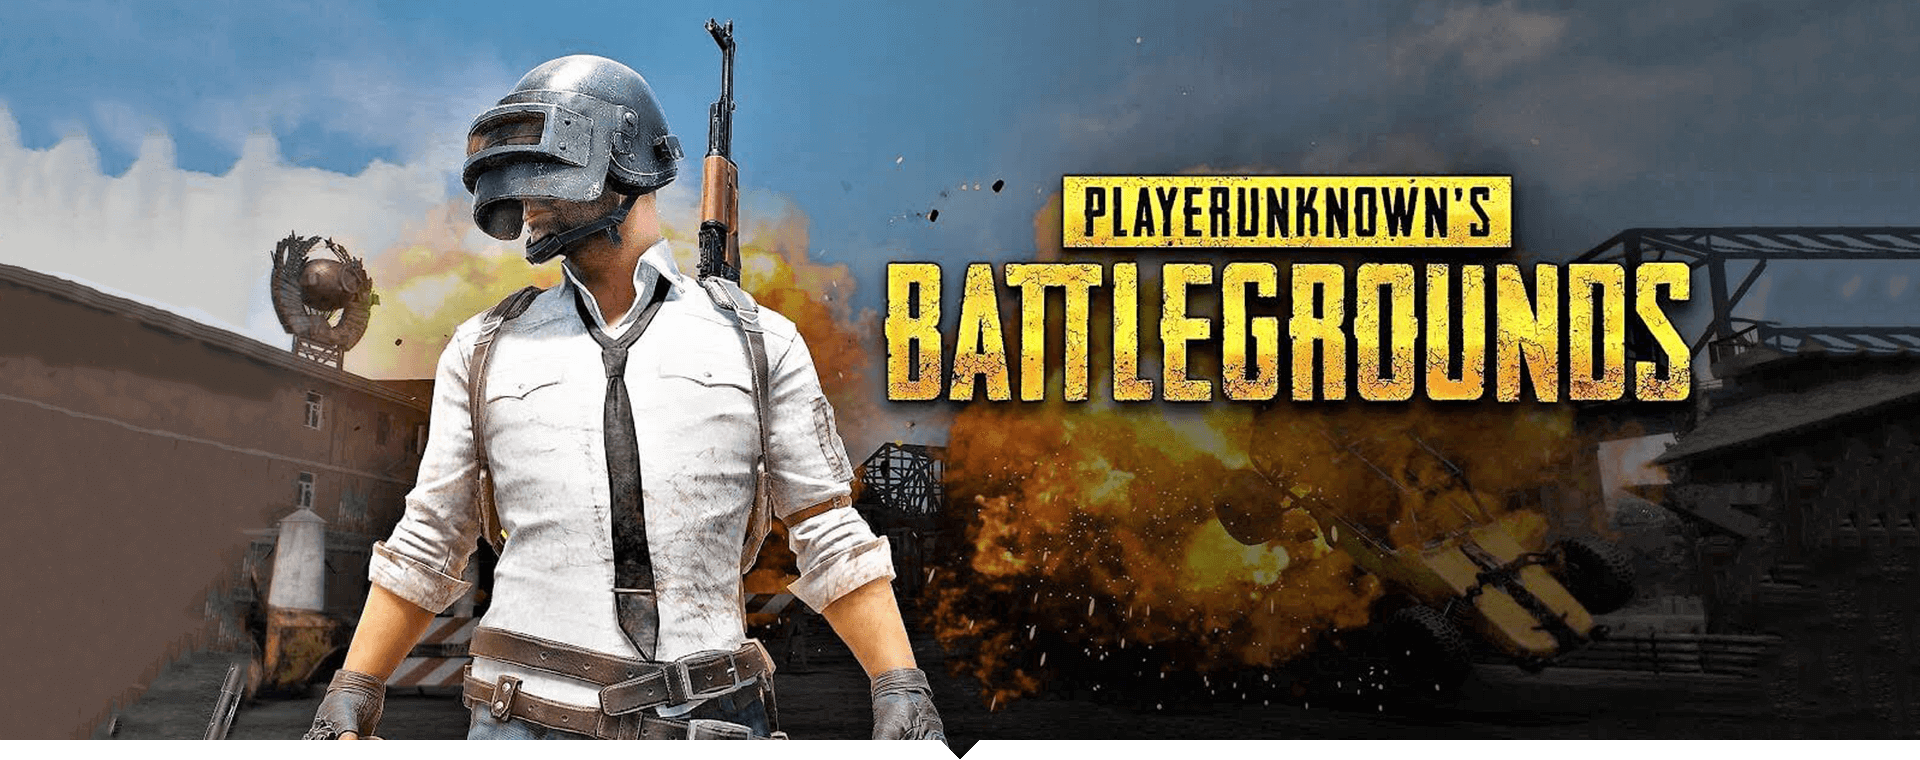 pubg emulator for 1gb ram android download